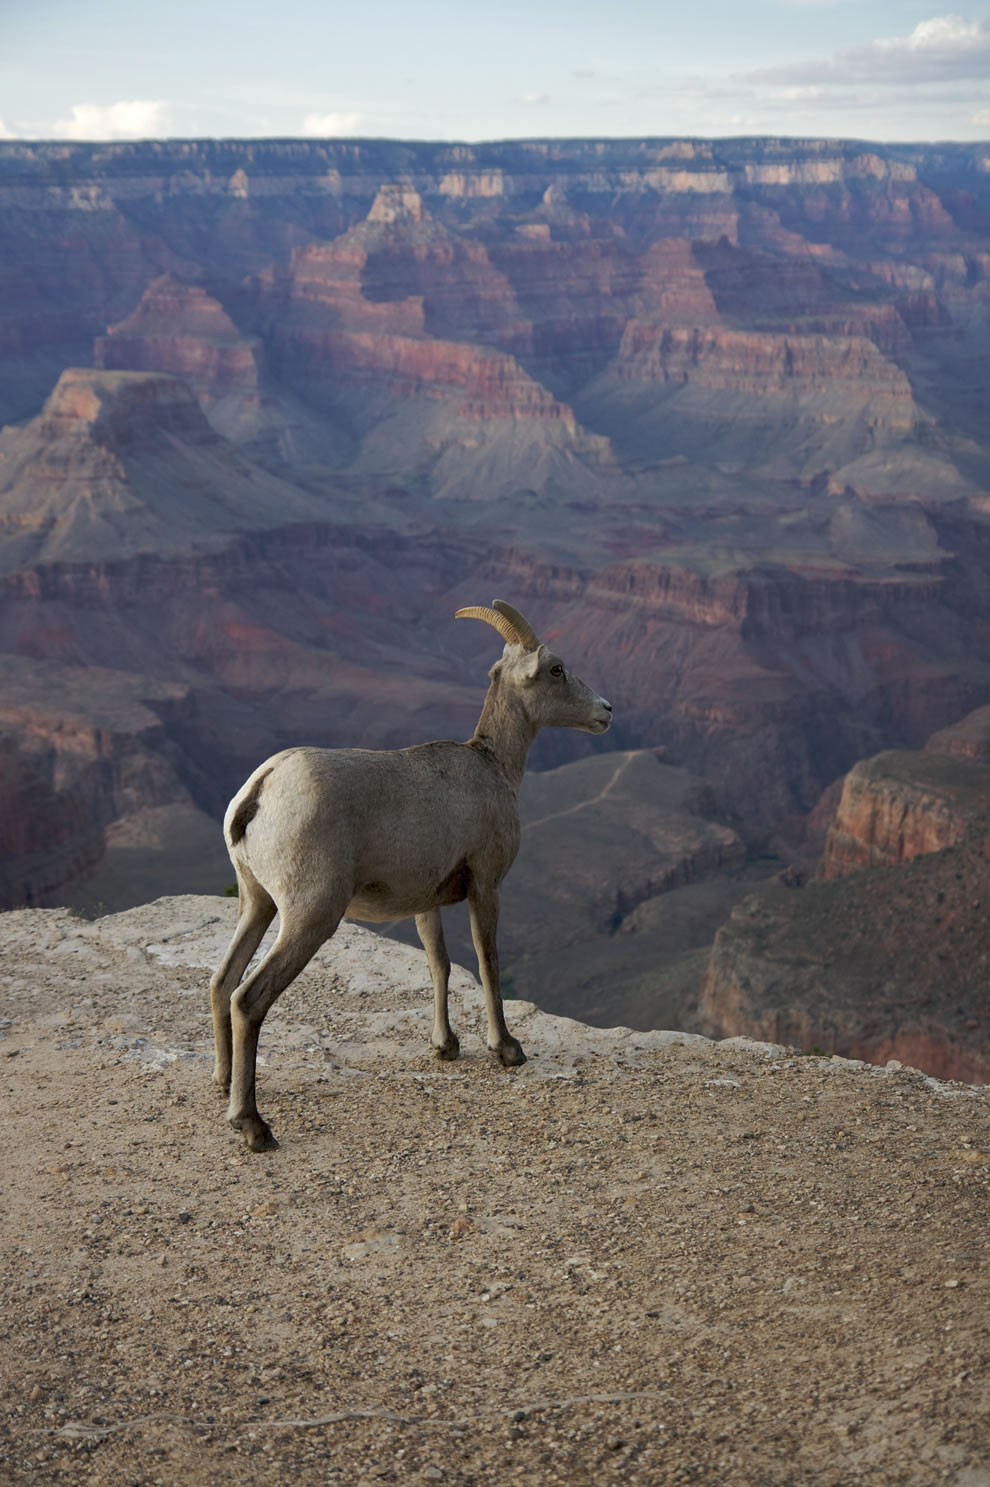 https://i2.wp.com/www.lovethesepics.com/wp-content/uploads/2011/03/Mountain-goat-Bighorn-Grand-Canyon.jpg